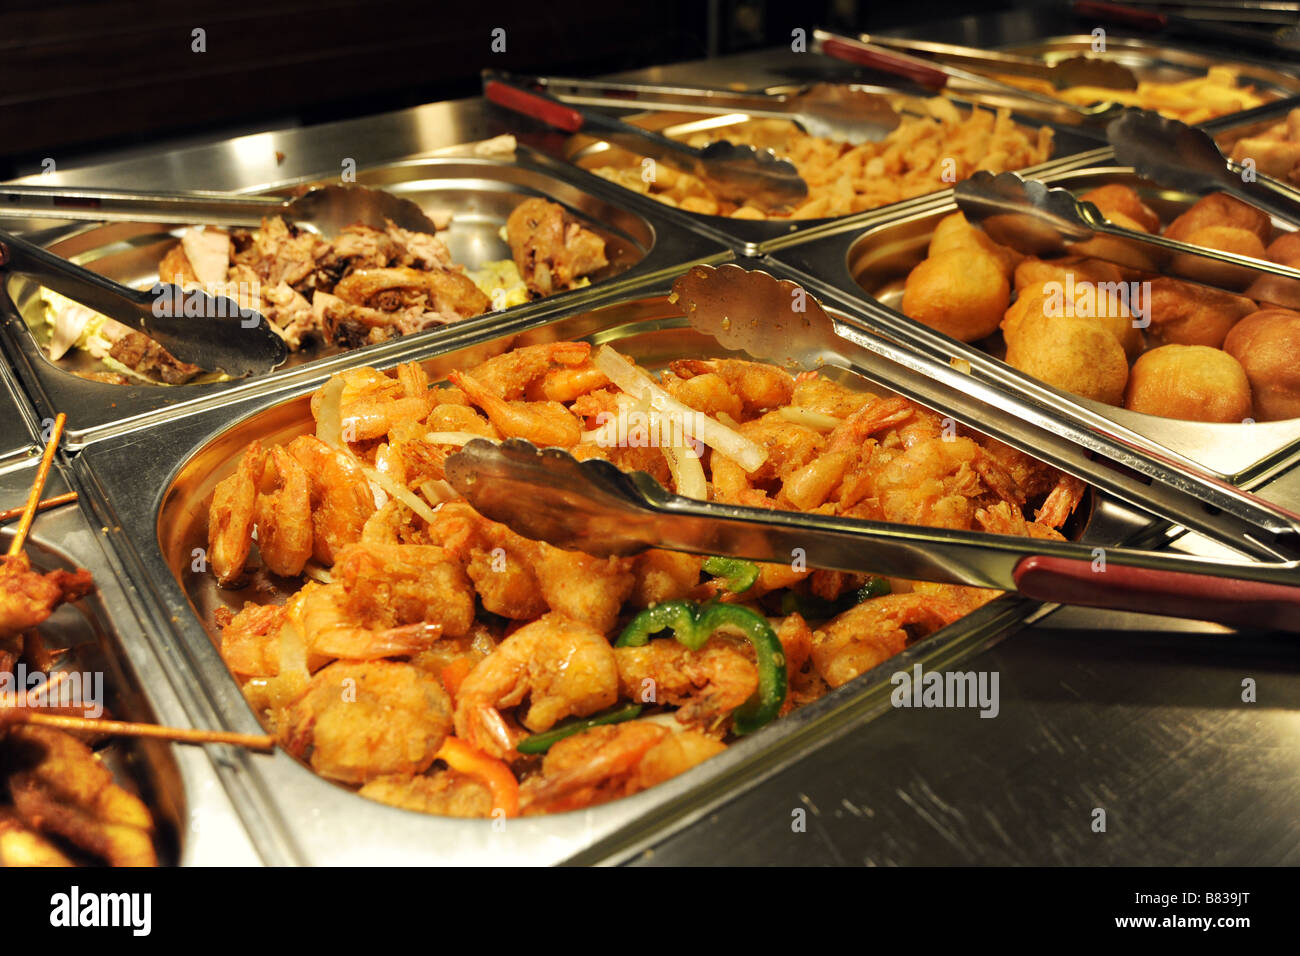 Chinese Food Istanbul